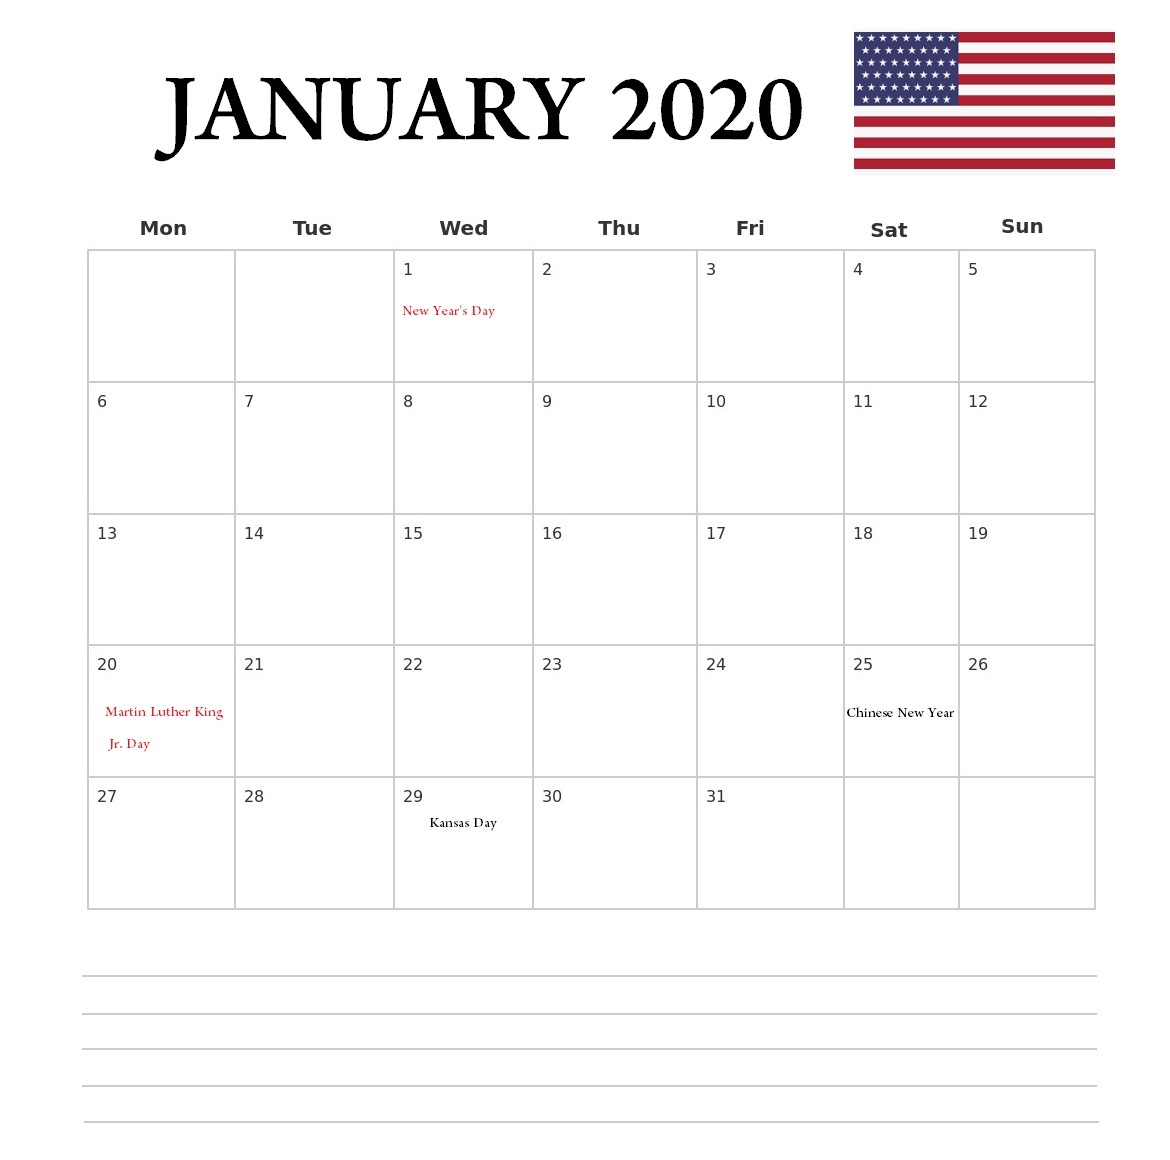 January 2020 Printable Calendar | Latest Calendar throughout Show Calendar For January 2020